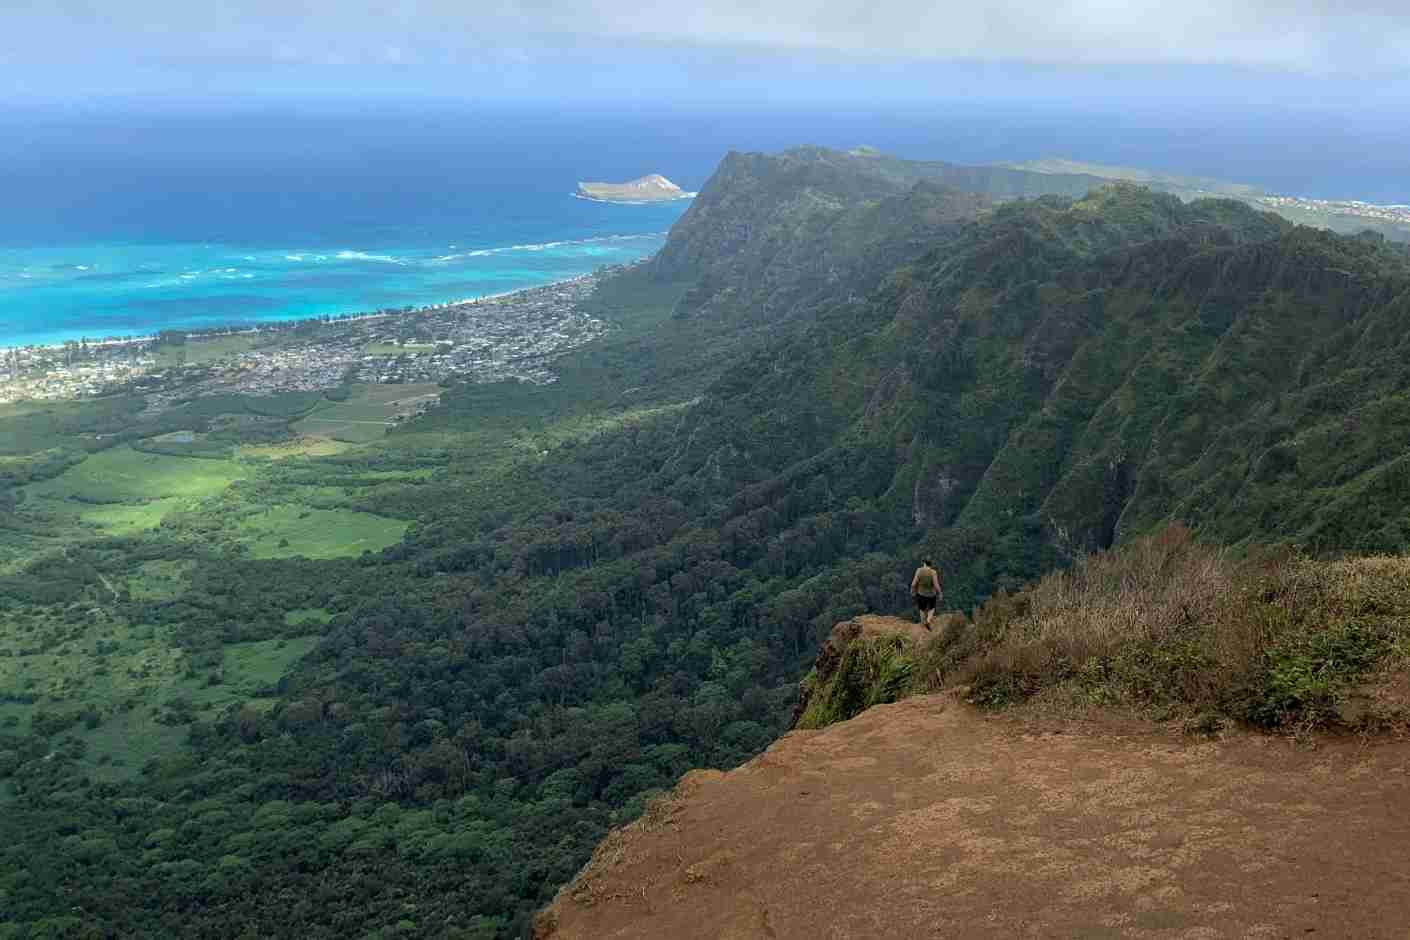 I was plenty warm on this hike in Oahu until the clouds and rain rolled in, and I was happy I had my rain jacket. (Photo by Brian Biros / The Points Guy)